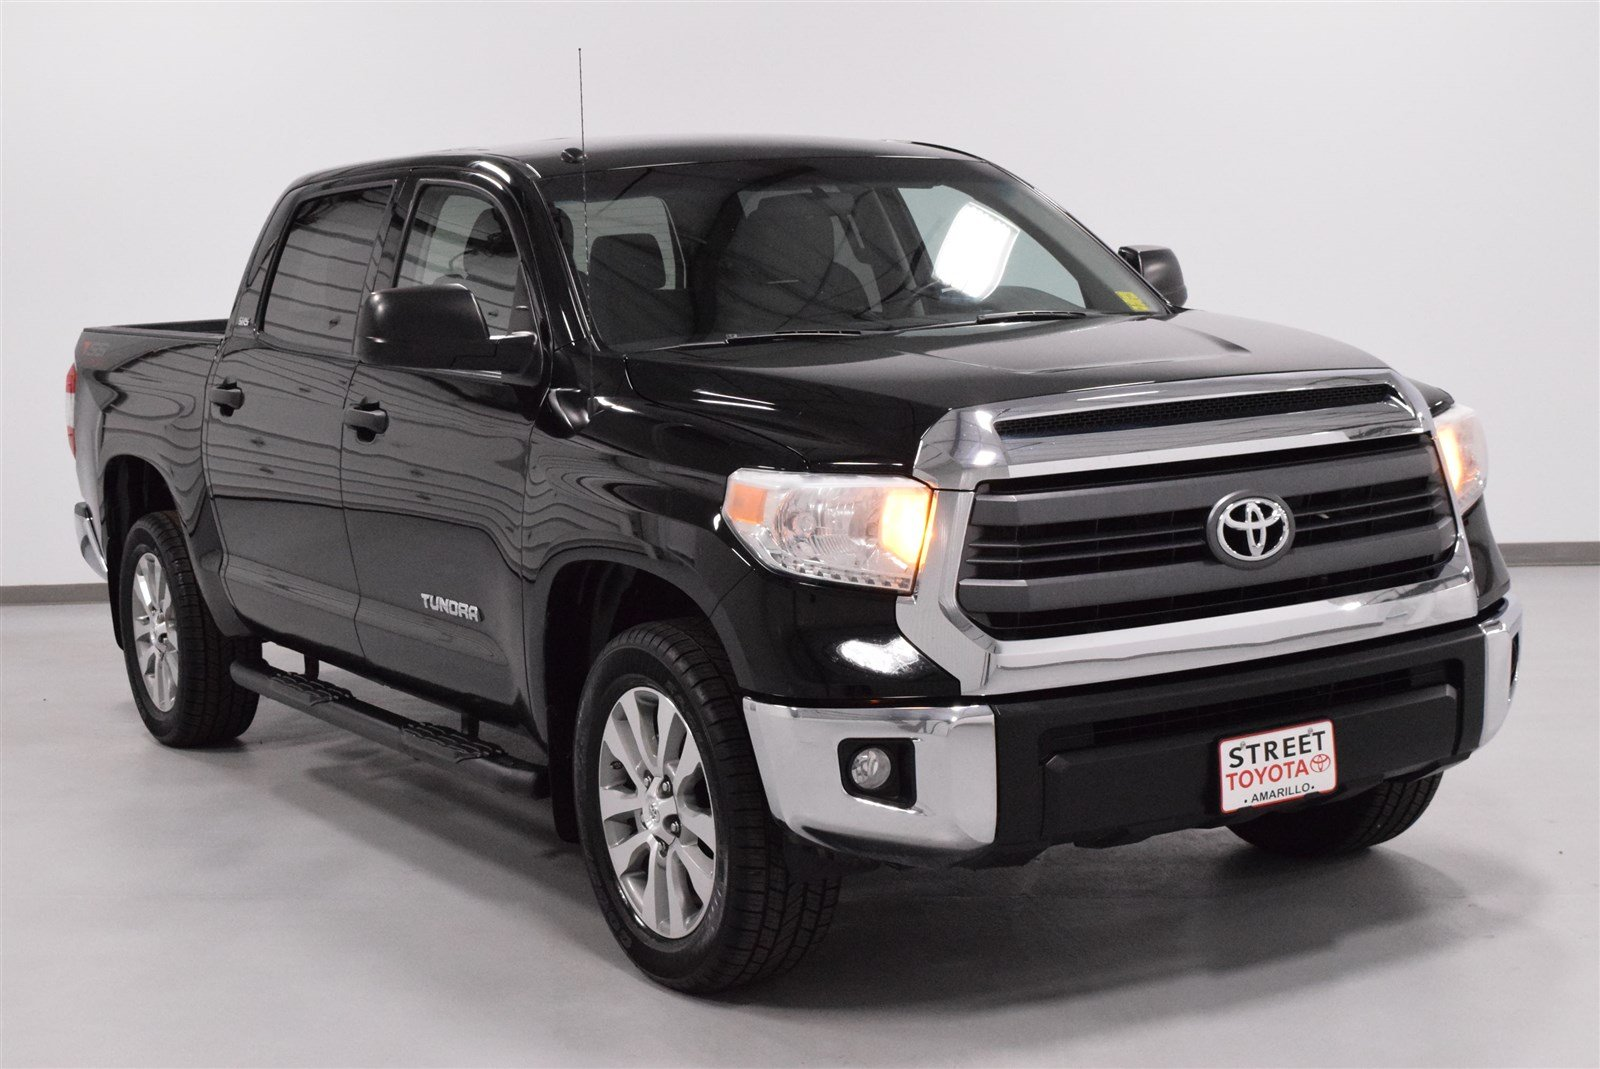 Certified Pre-Owned 2014 Toyota Tundra SR5 RWD Crew Cab Pickup